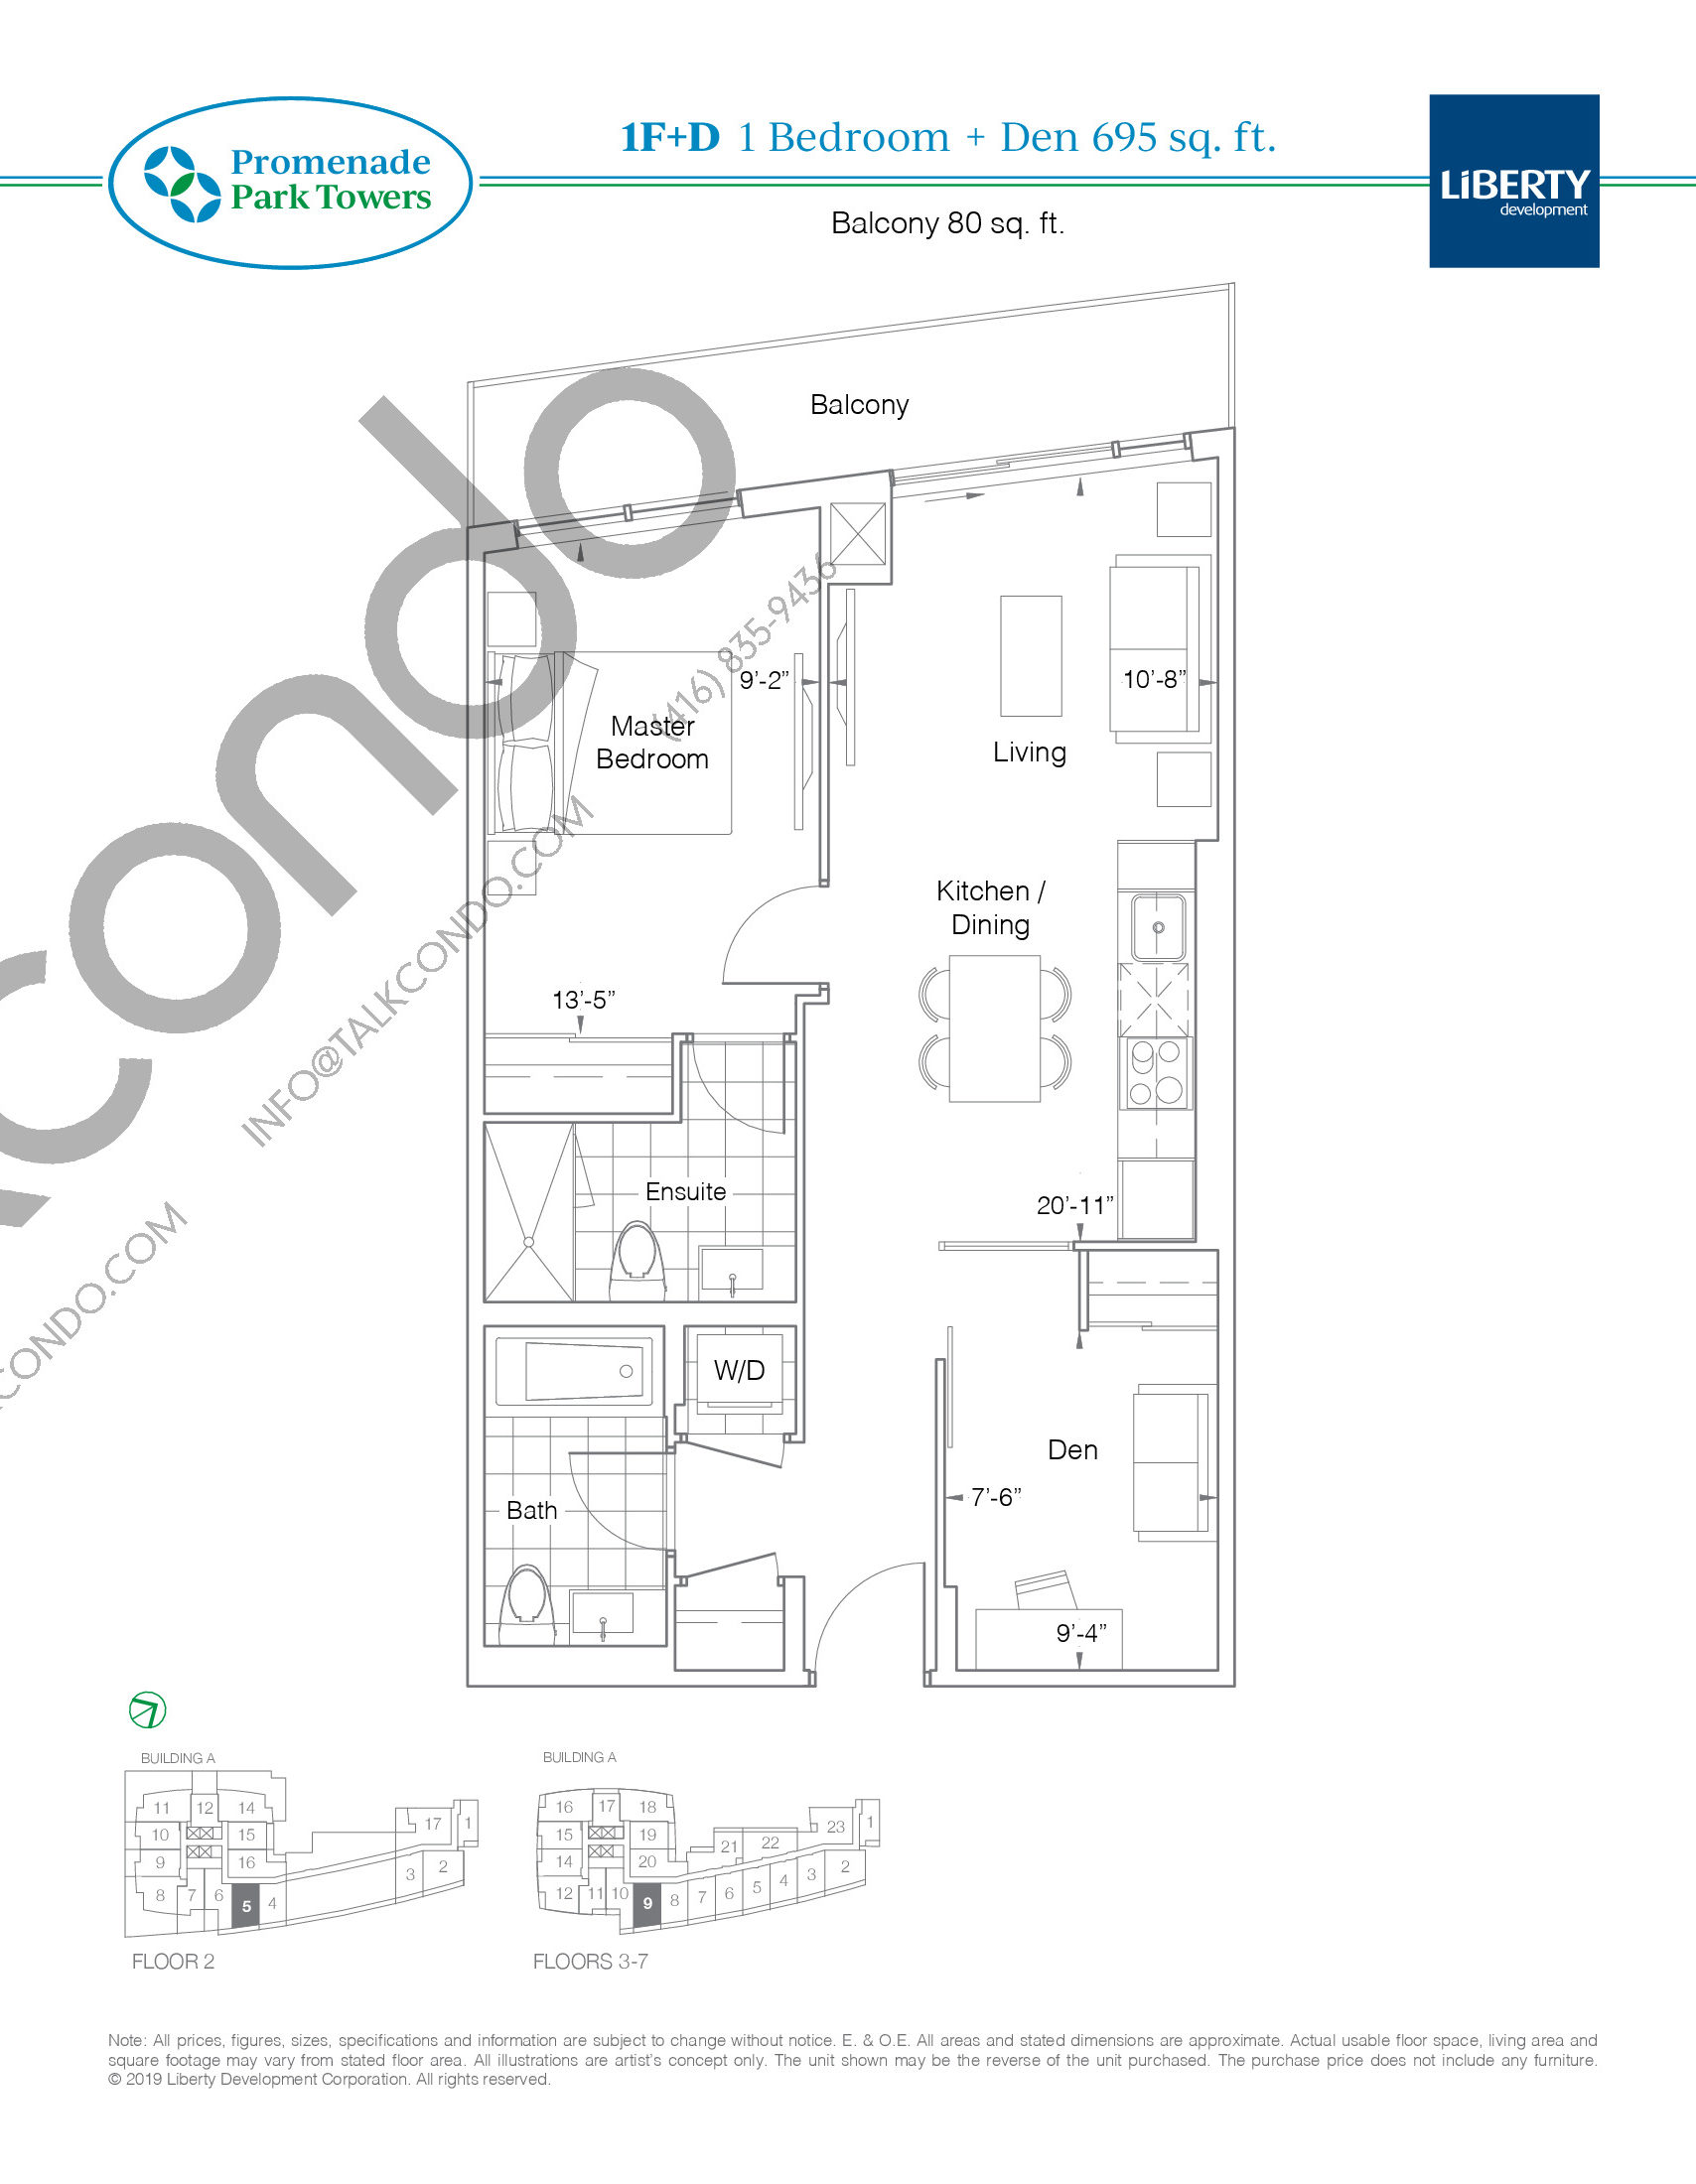 1F+D Floor Plan at Promenade Park Towers Condos - 695 sq.ft